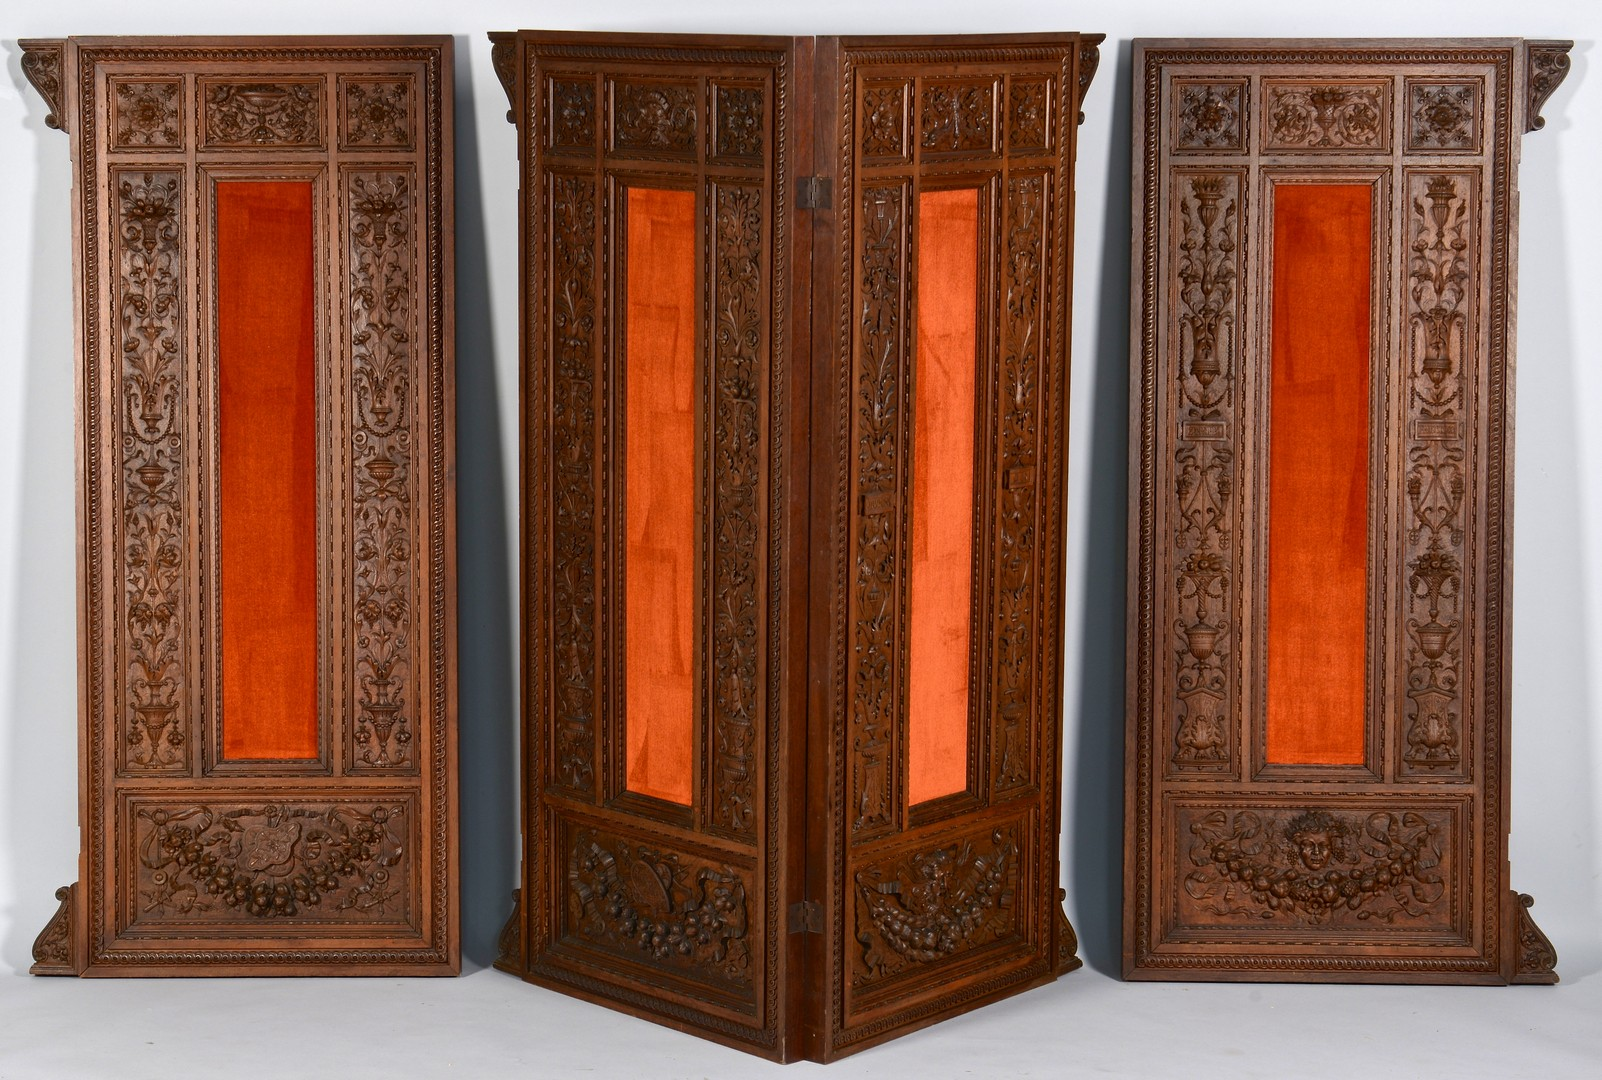 Lot 275: 4 European Wooden Carved Panels